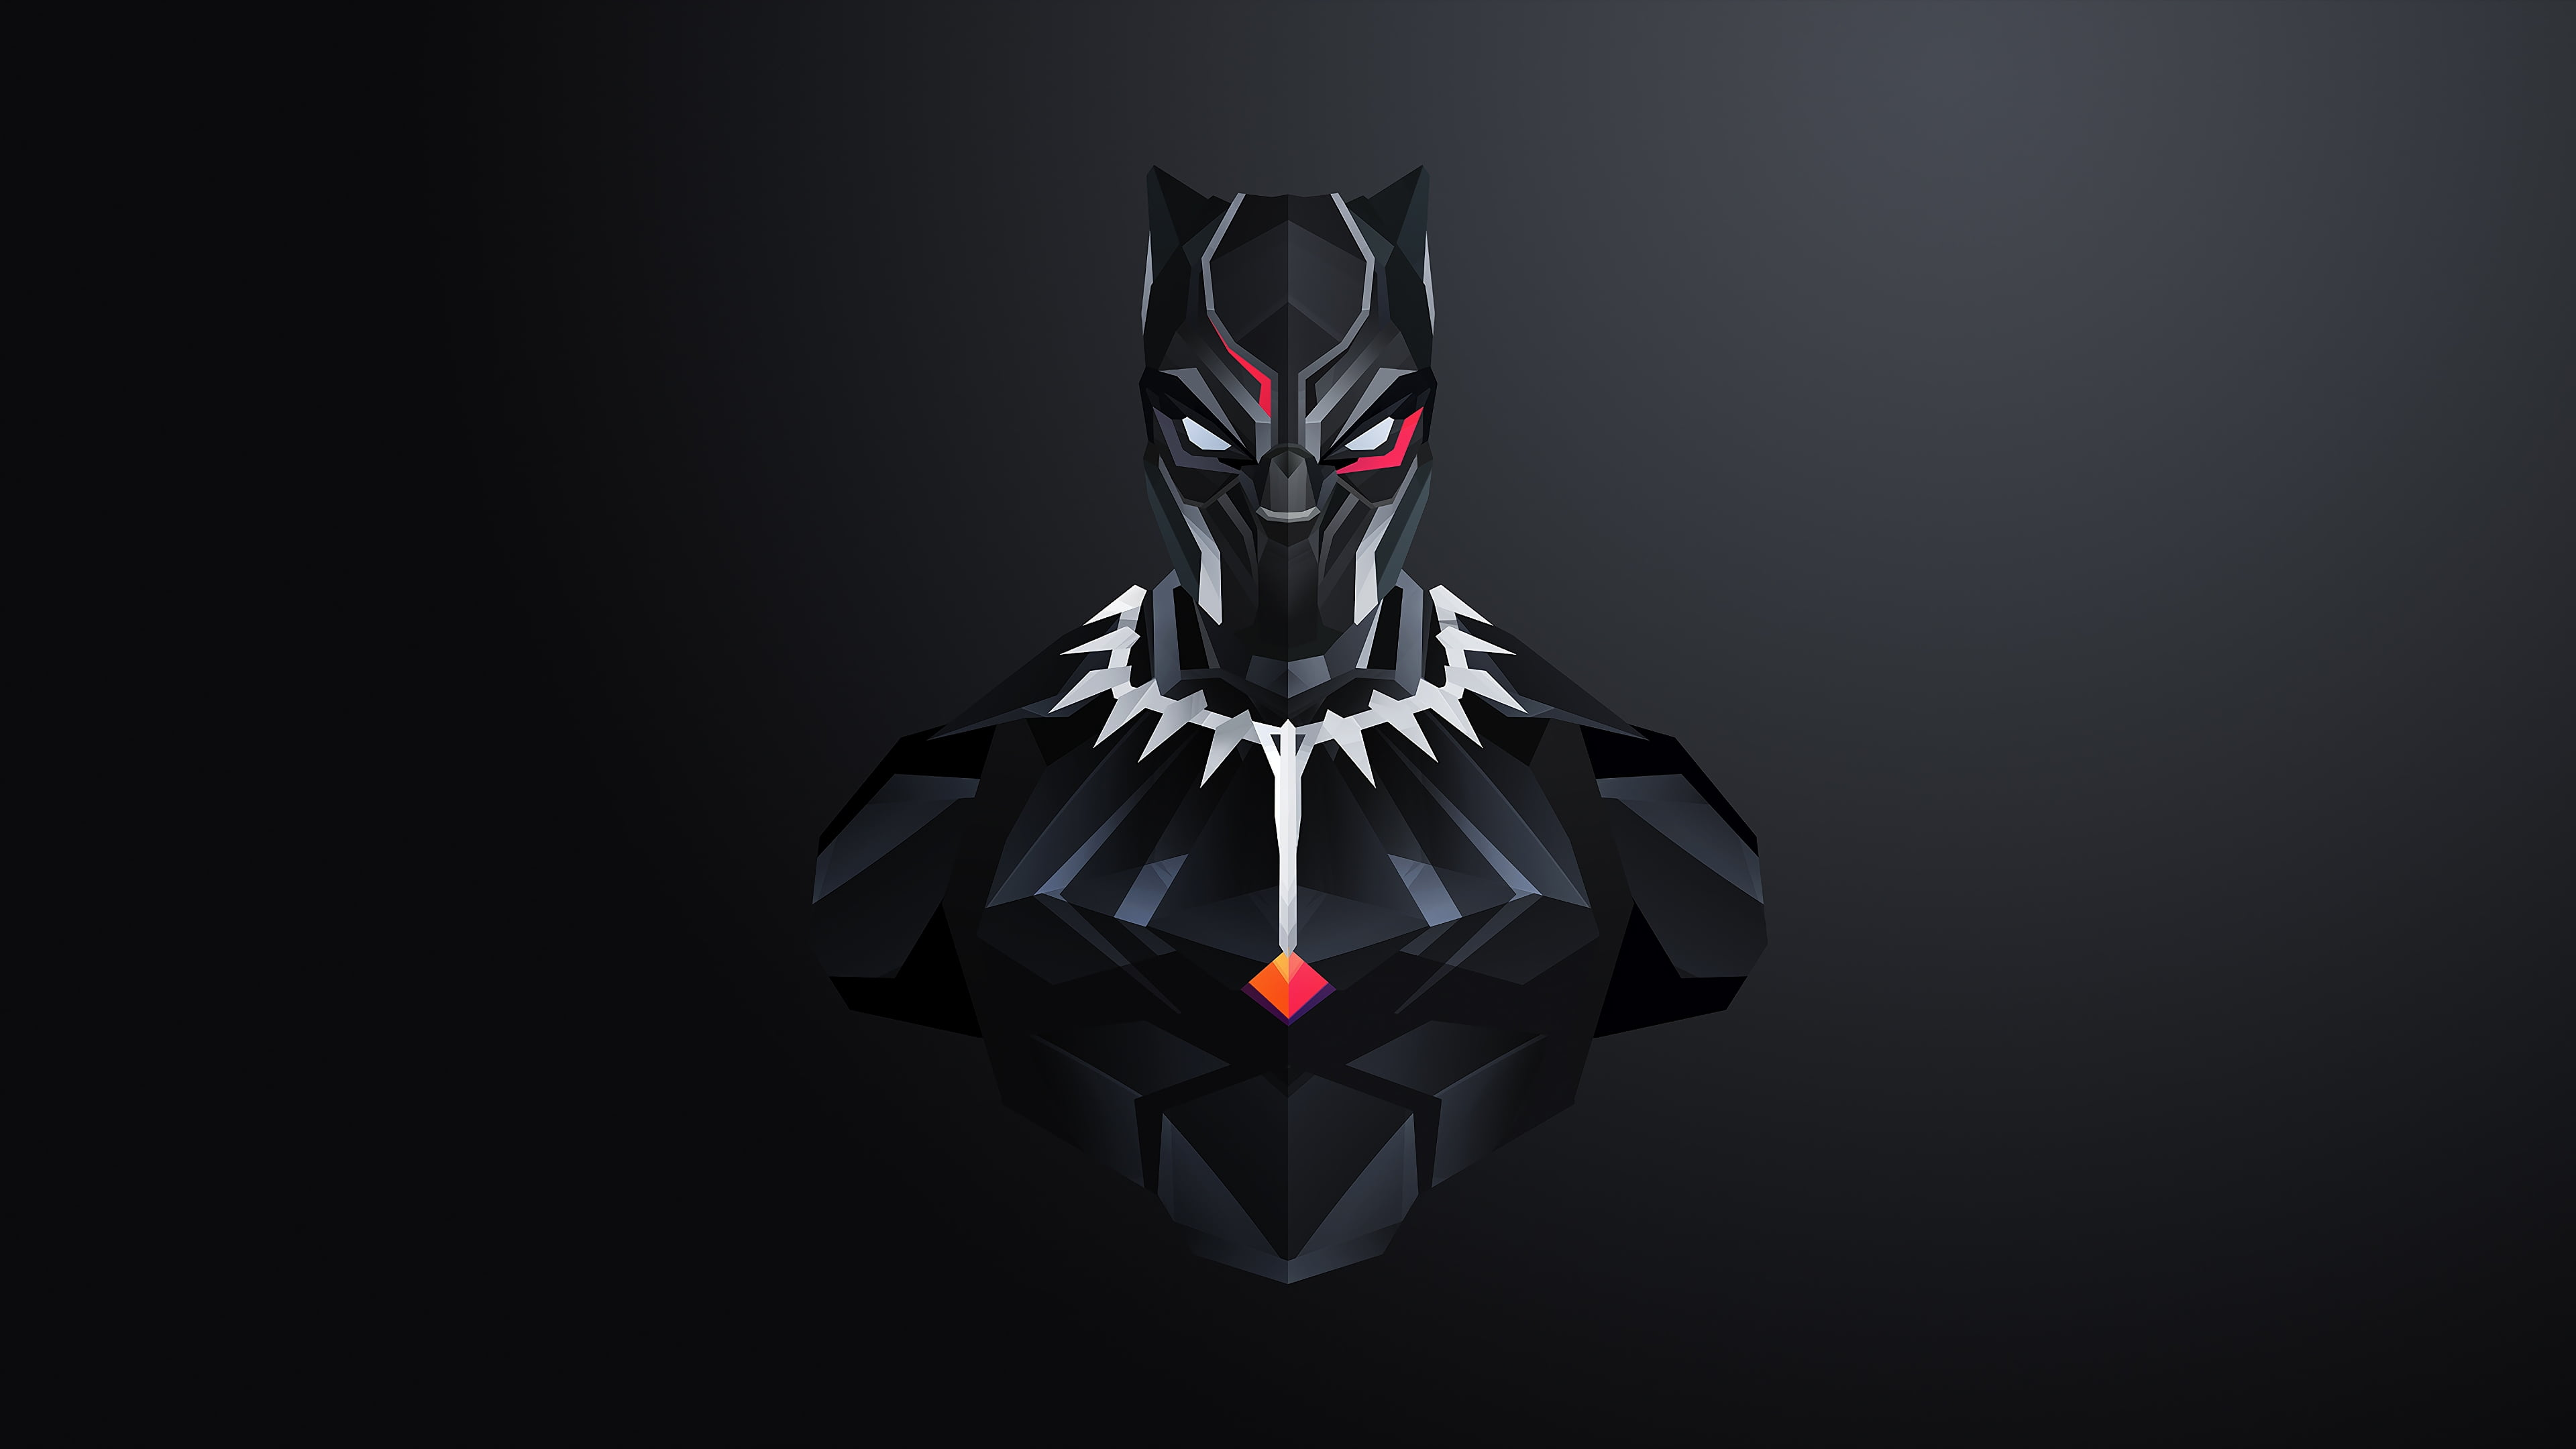 Black panther minimalist clipart picture free stock Marvel Black Panther illustration HD wallpaper | Wallpaper Flare picture free stock